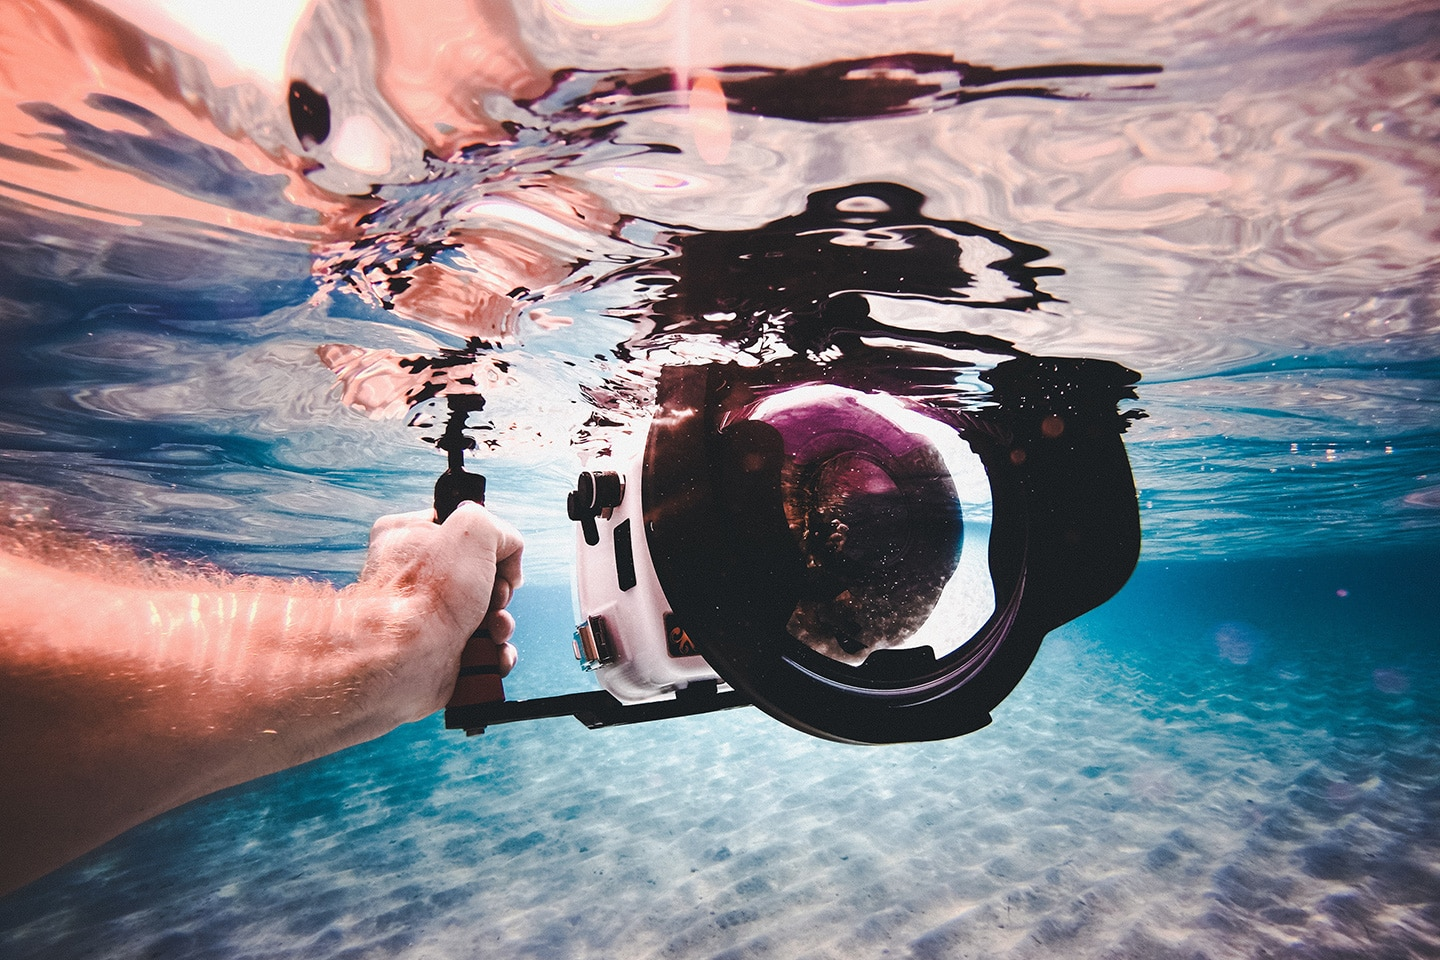 underwater camera with dome port